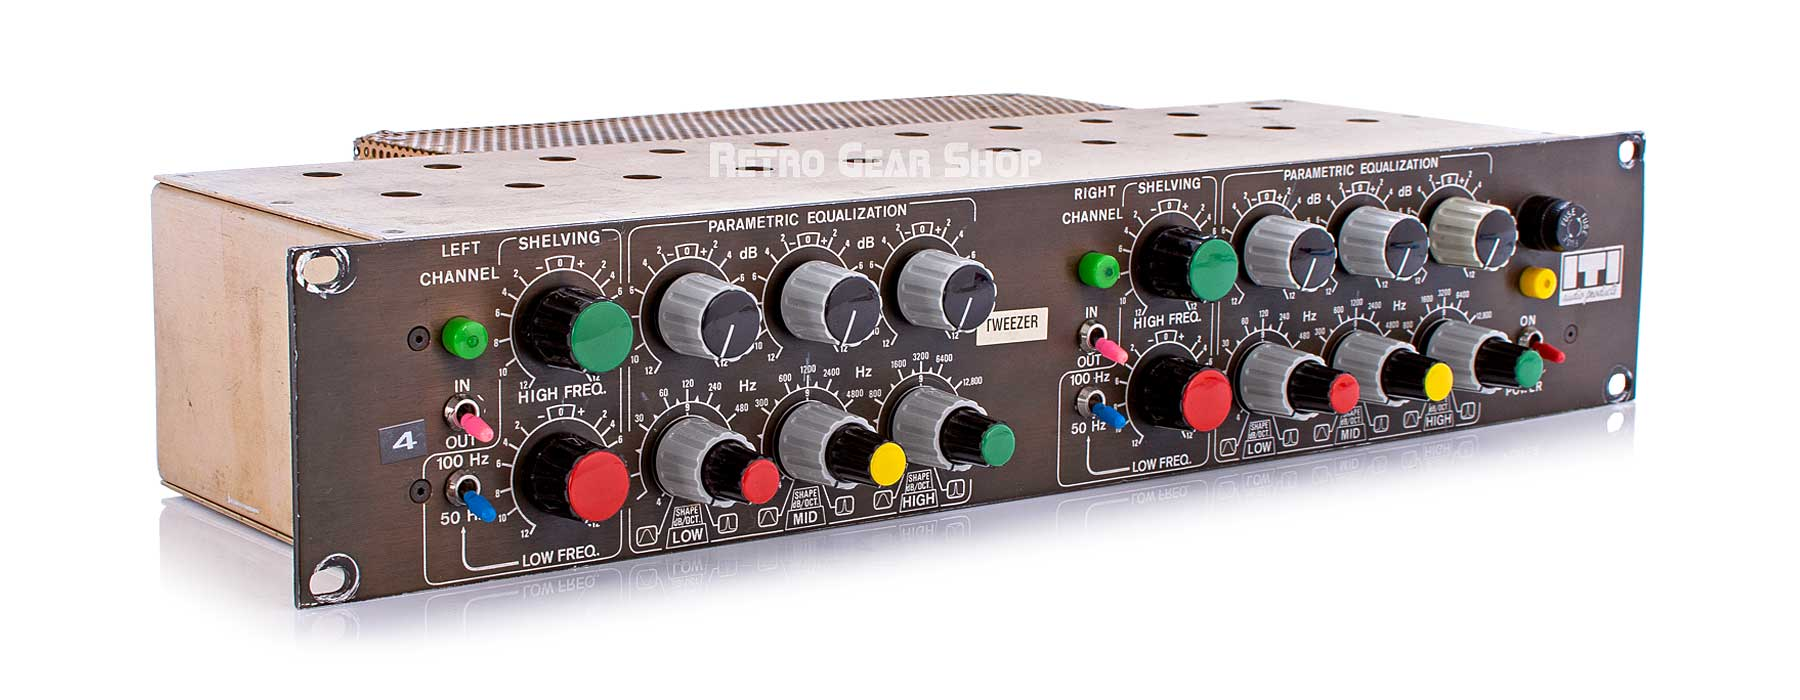 ITI Sontec 230 Parametric EQ Top Left